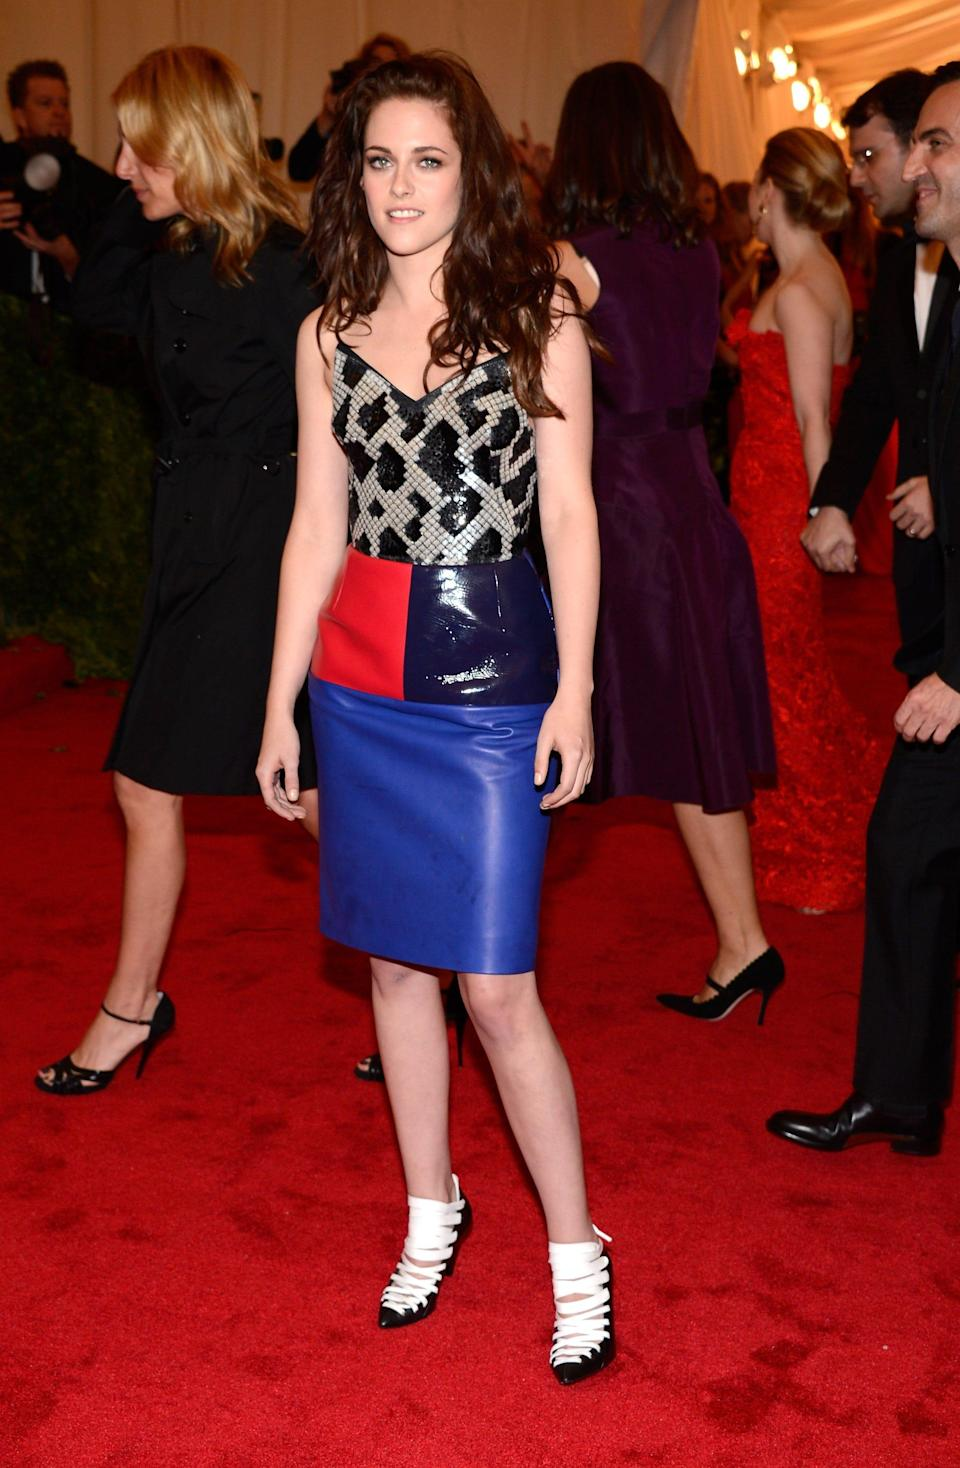 Kristen Stewart stands on a red carpet in an animal print top, color block skirt, and white shoes.